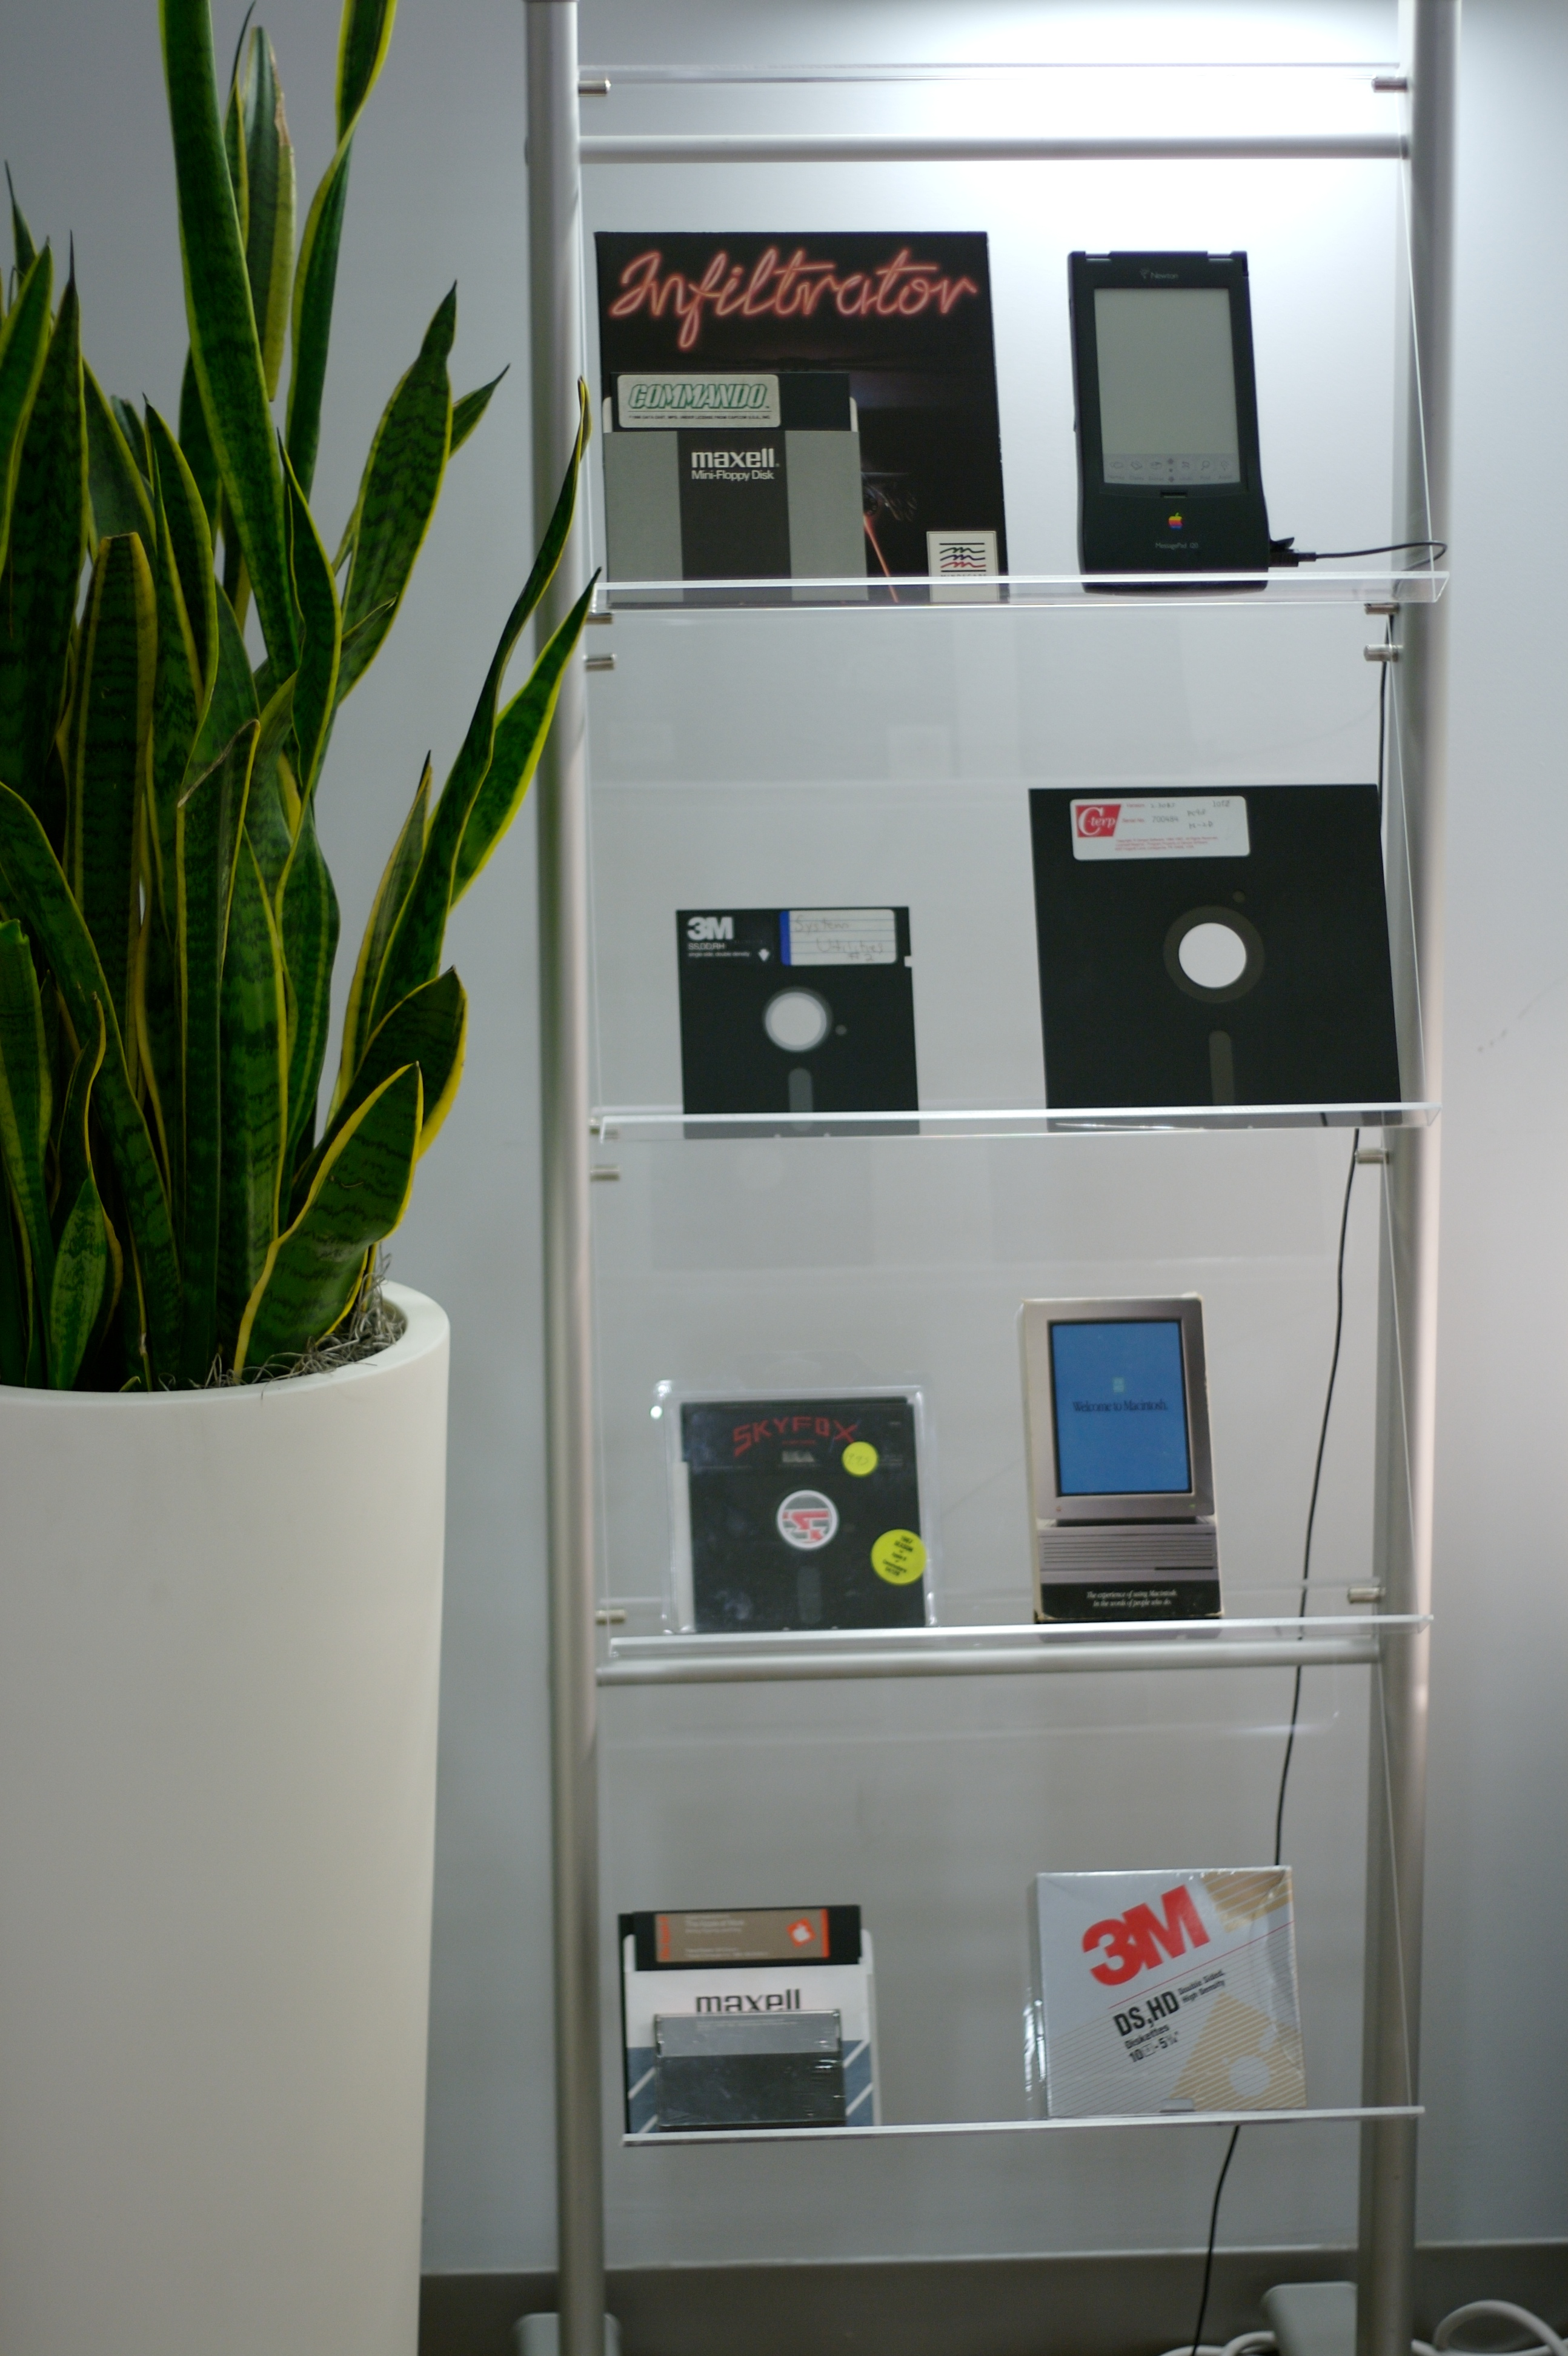 File:Software, Google NY office computer museum jpg